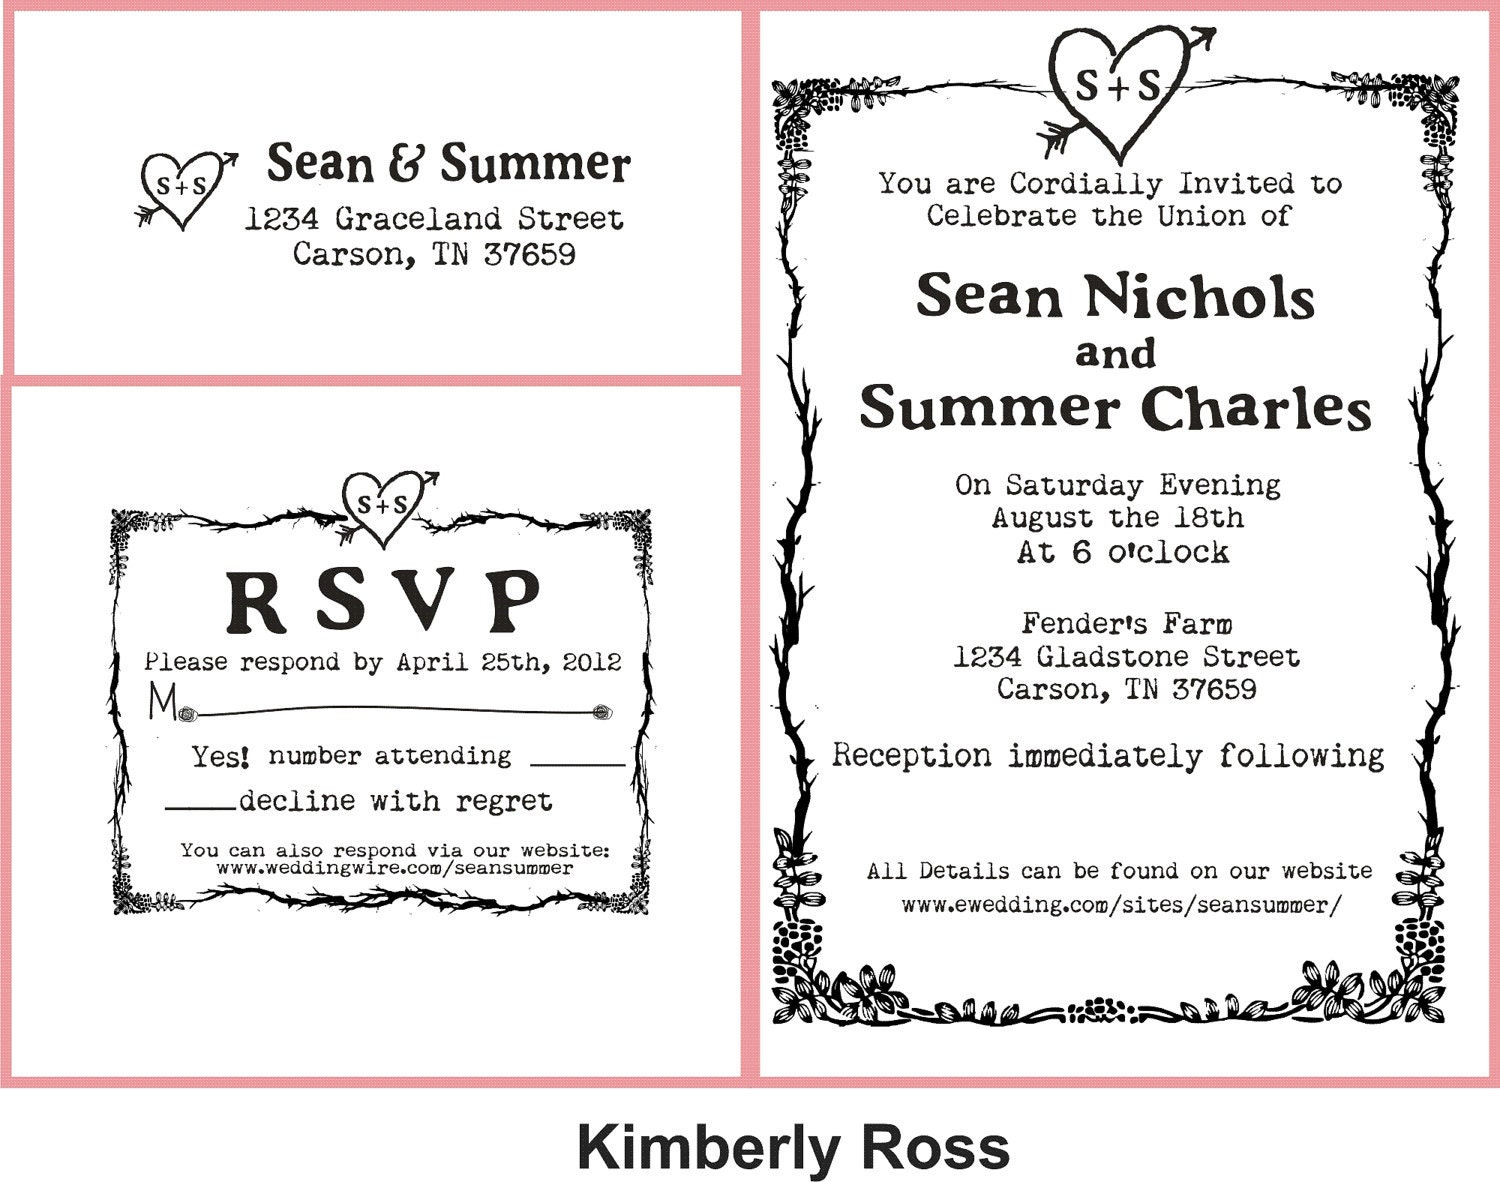 Wedding Invite Stamp: Wedding Invitation Rubber Stamp With Typewriter Font And